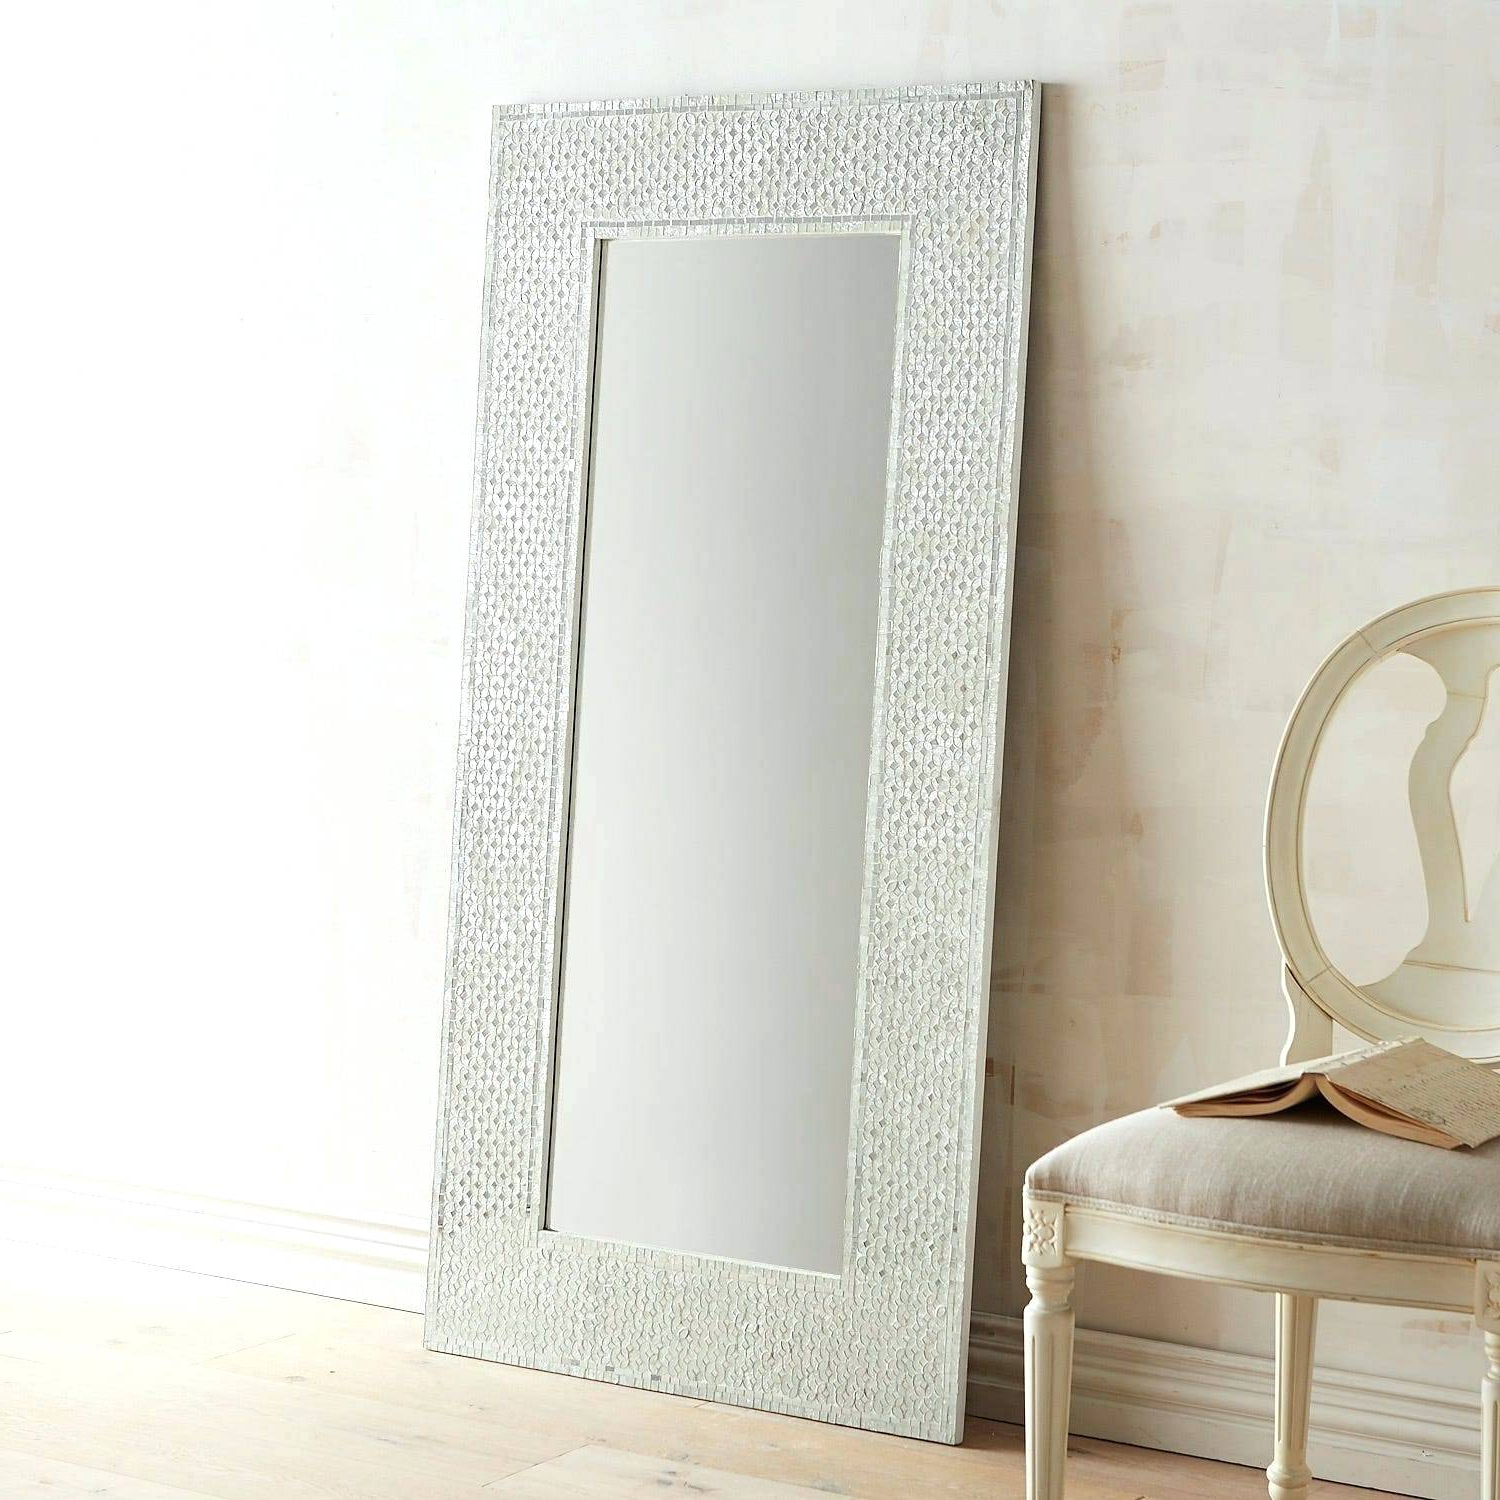 Widely Used Full Length Glass Mirror Wall Safety Mosaic Floor Pier 1 Furniture In Pier One Wall Mirrors (View 9 of 20)